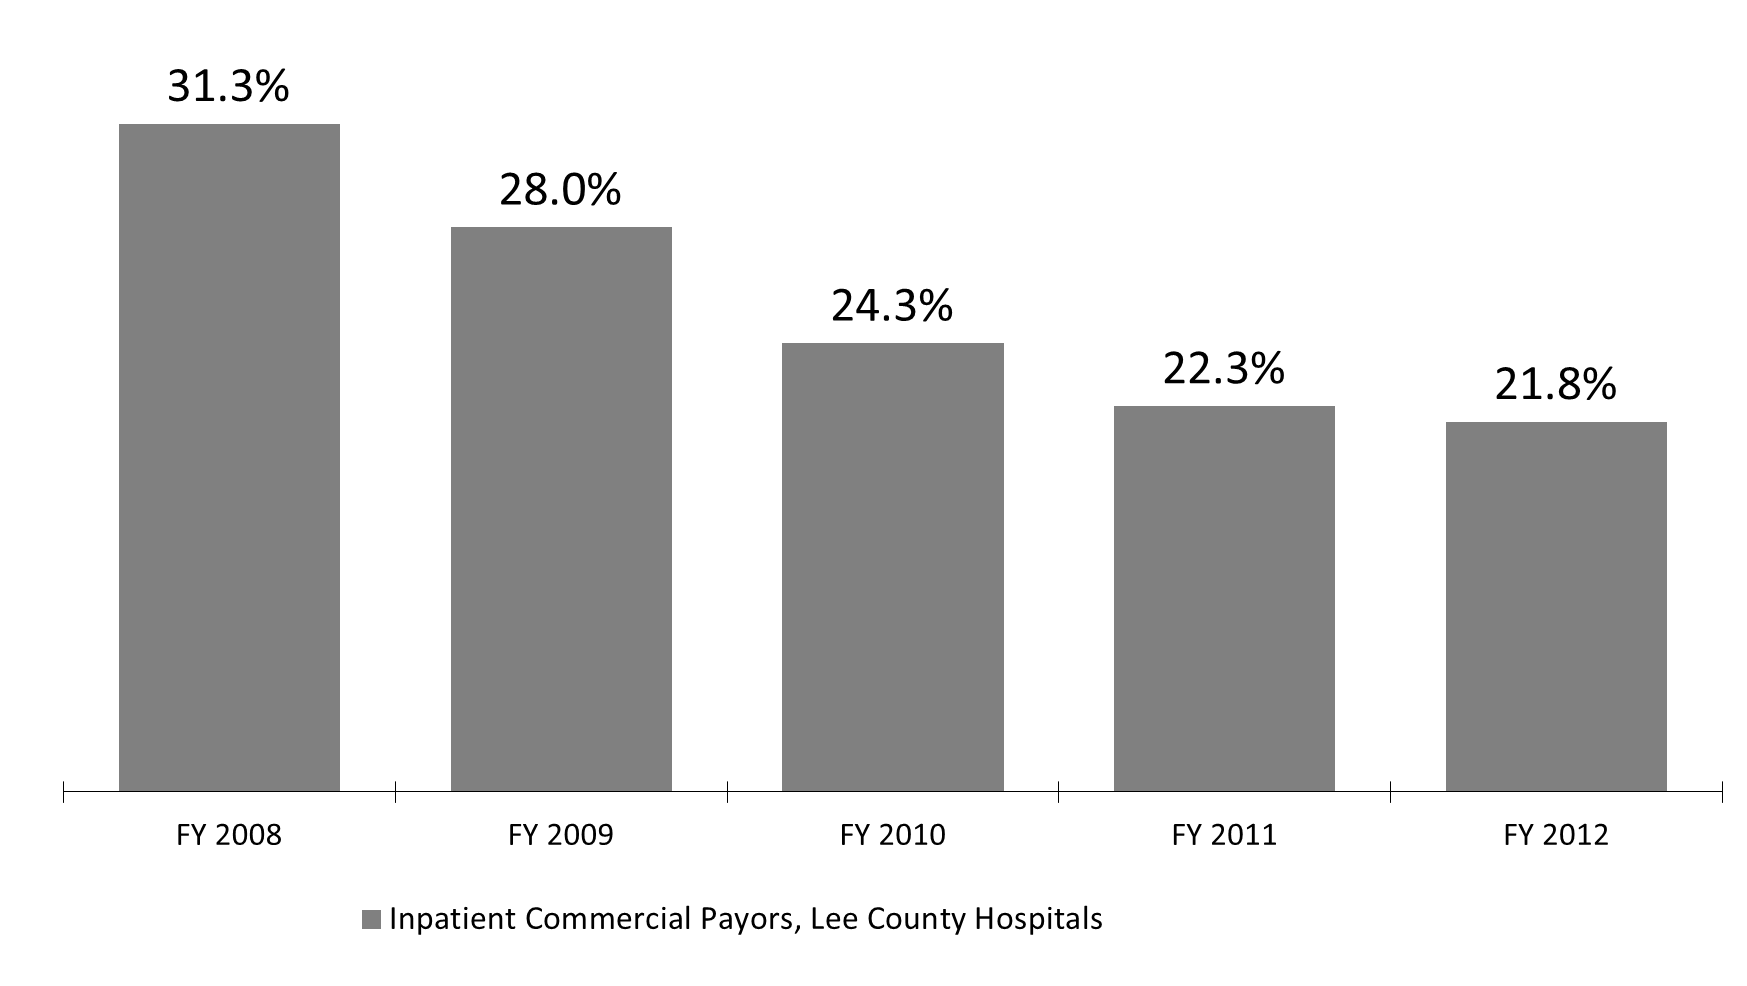 Inpatient Commercial Payor 20% of inpatient cases